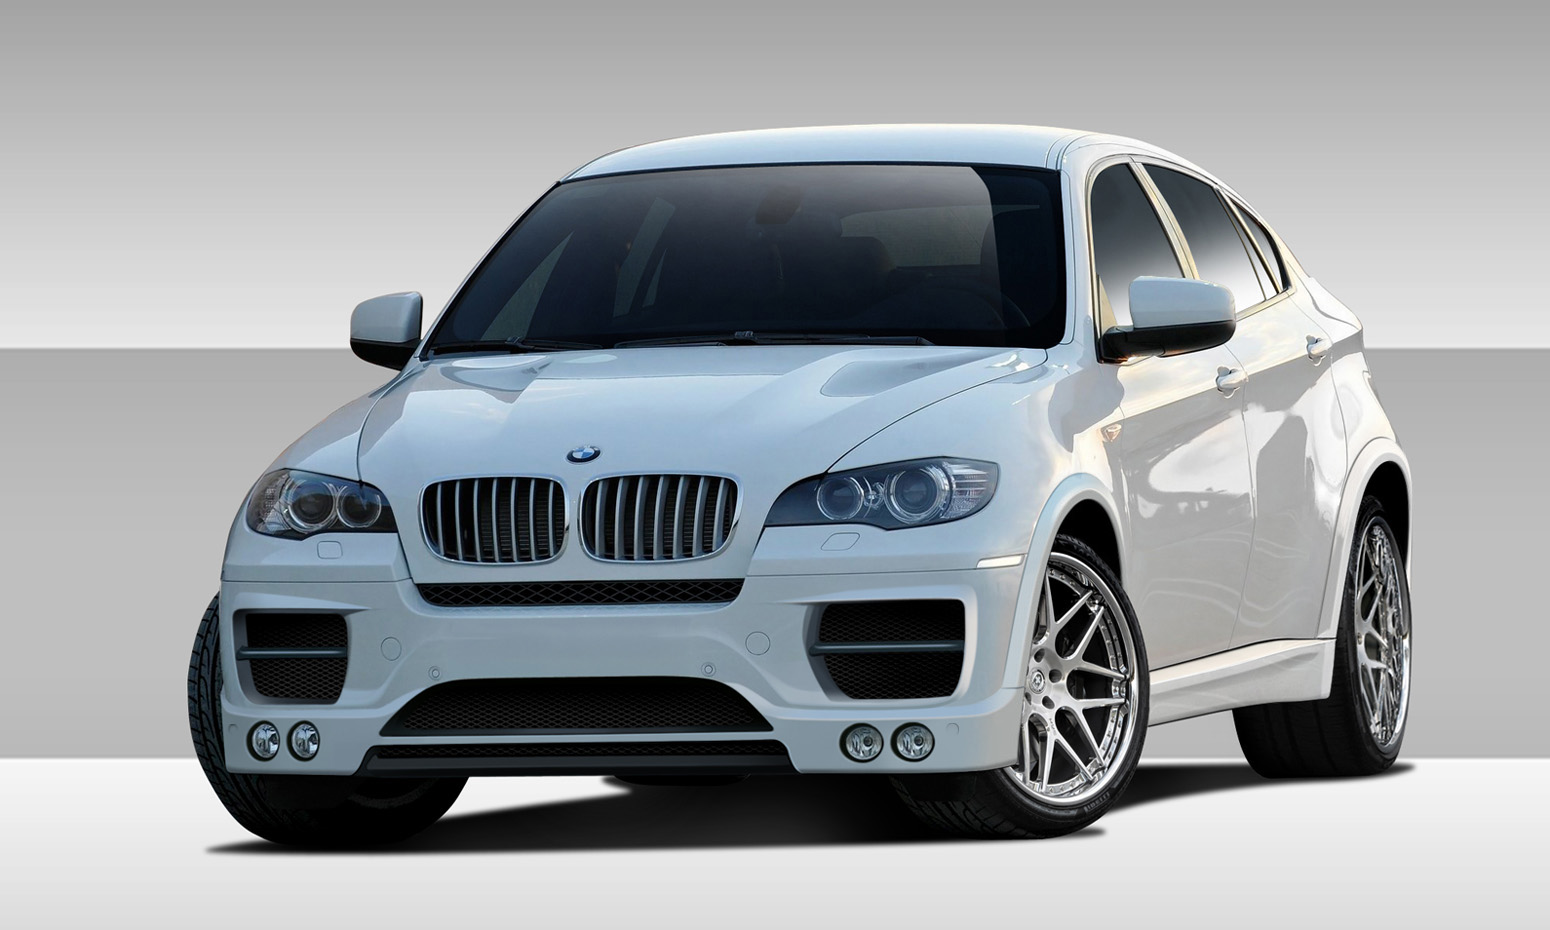 2010 bmw x6 all fiberglass body kit bodykit bmw x6 e71 e72 eros version 1 body kit 8. Black Bedroom Furniture Sets. Home Design Ideas